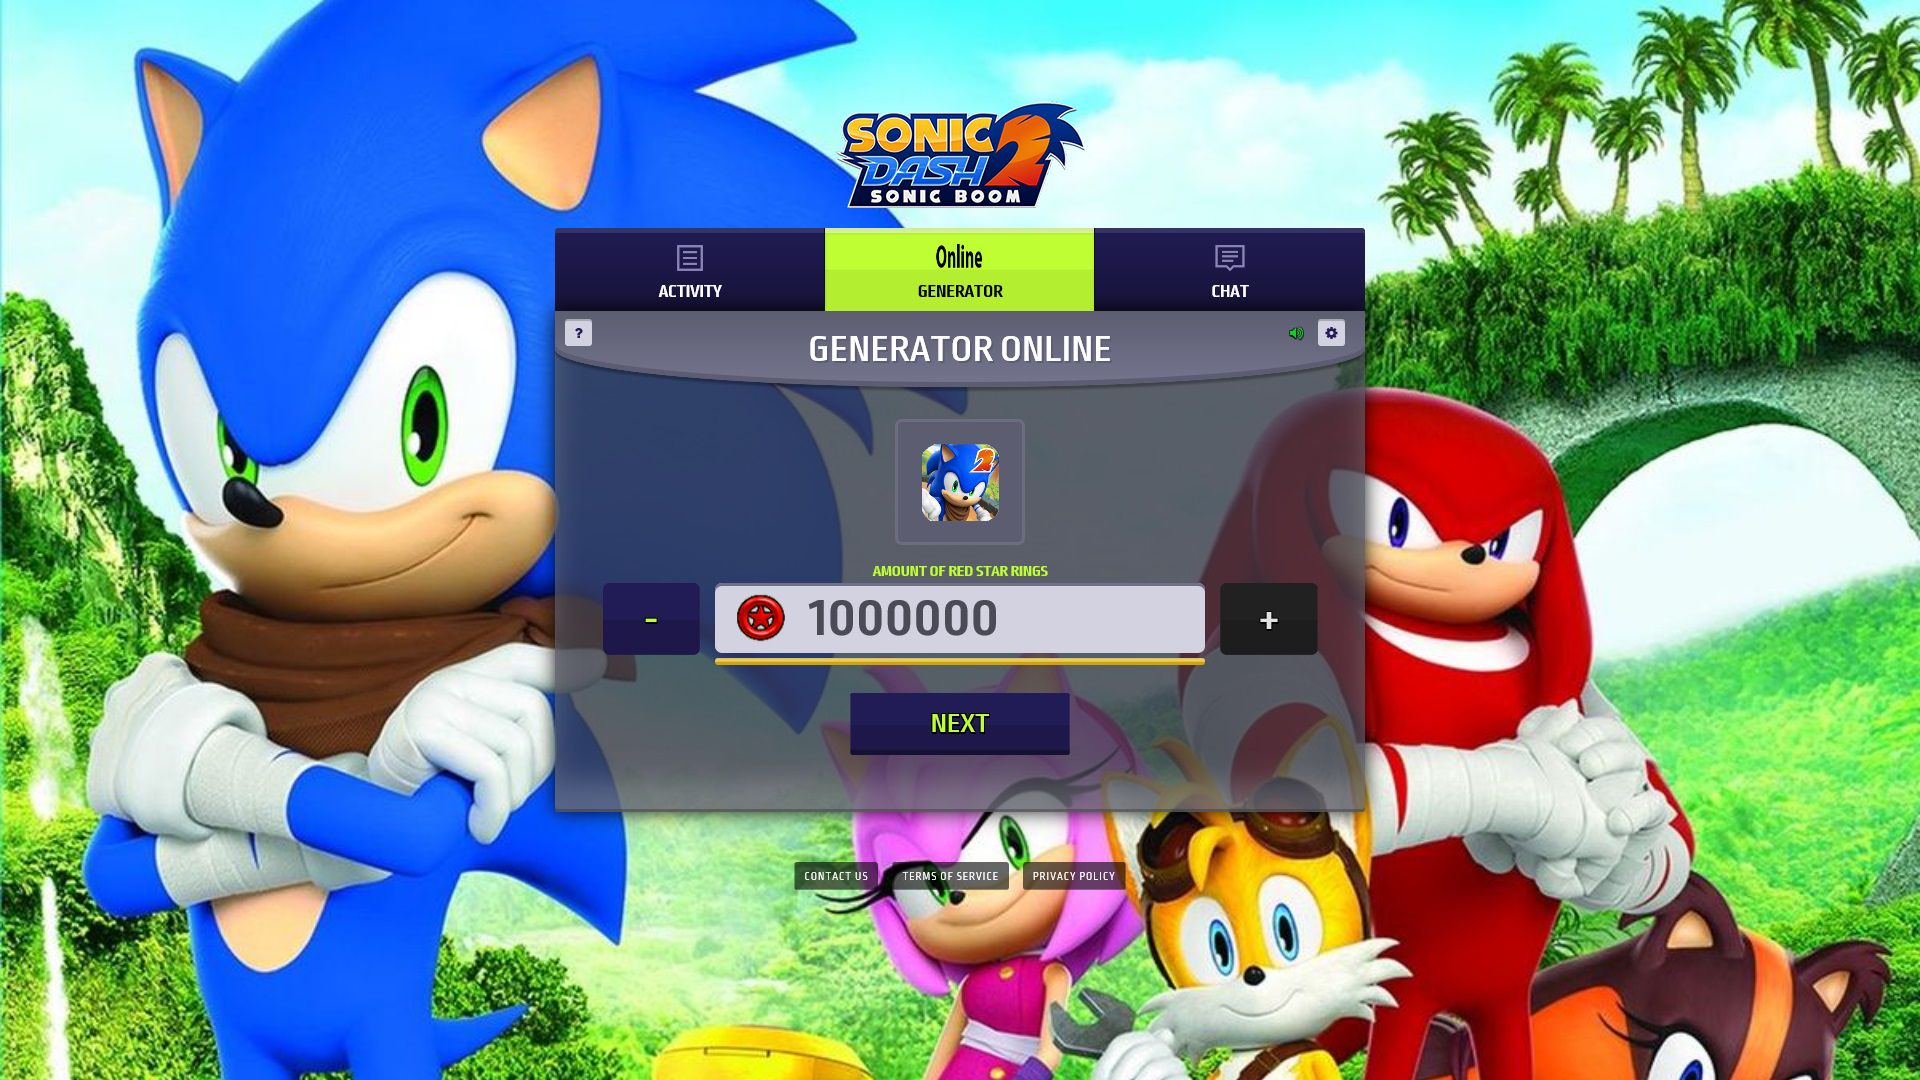 Sonic Dash 2 Sonic Boom Hack Mod - Get Red Star Rings and